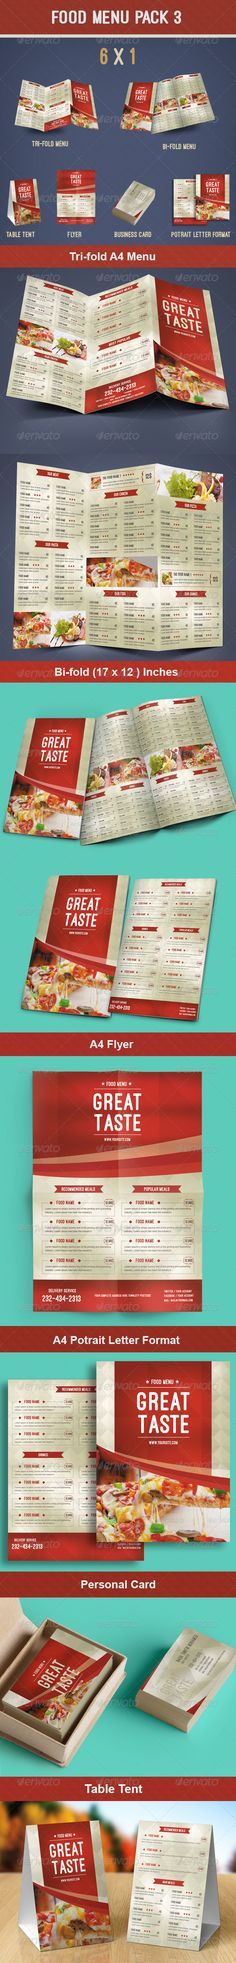 Food Menu Pack Template #design Download: http://graphicriver.net/item/food-menu-pack-3/8565596?ref=ksioks